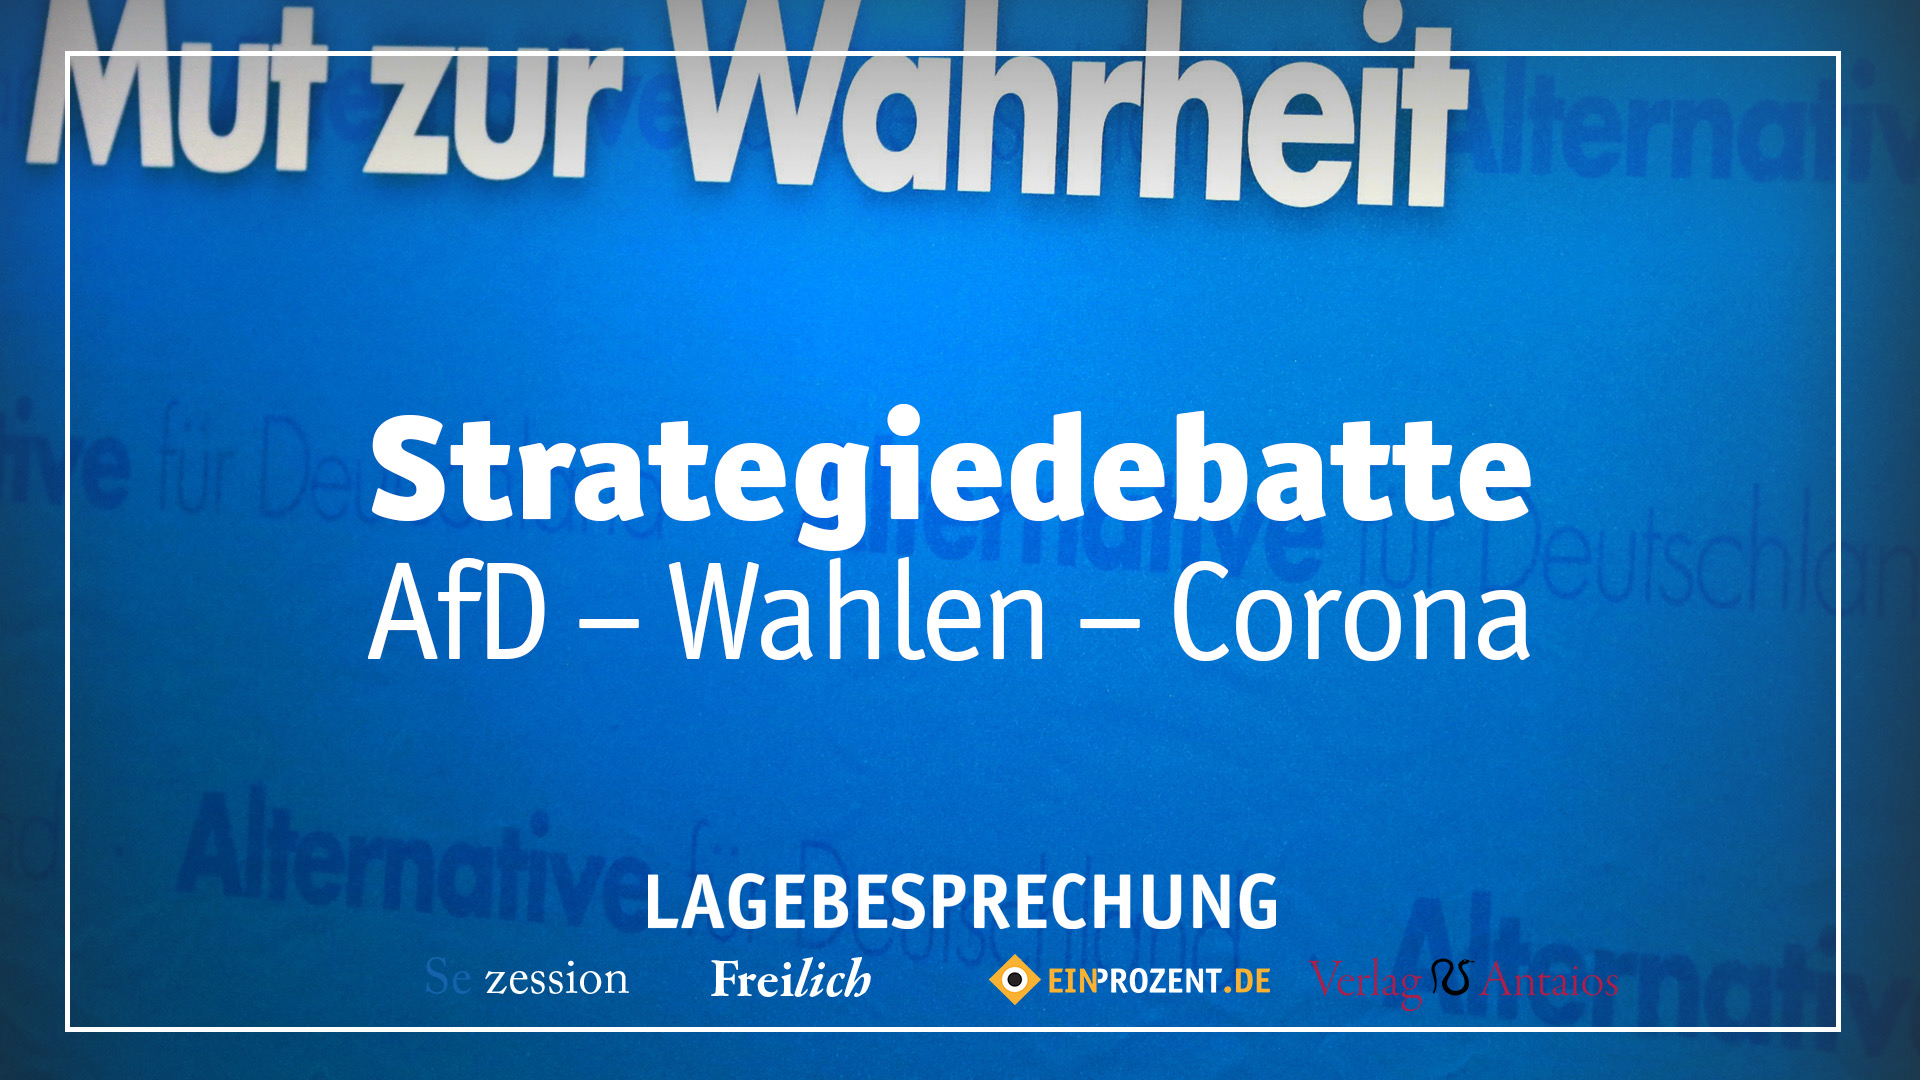 Strategiedebatte im Podcast: AfD, Wahlen, Corona